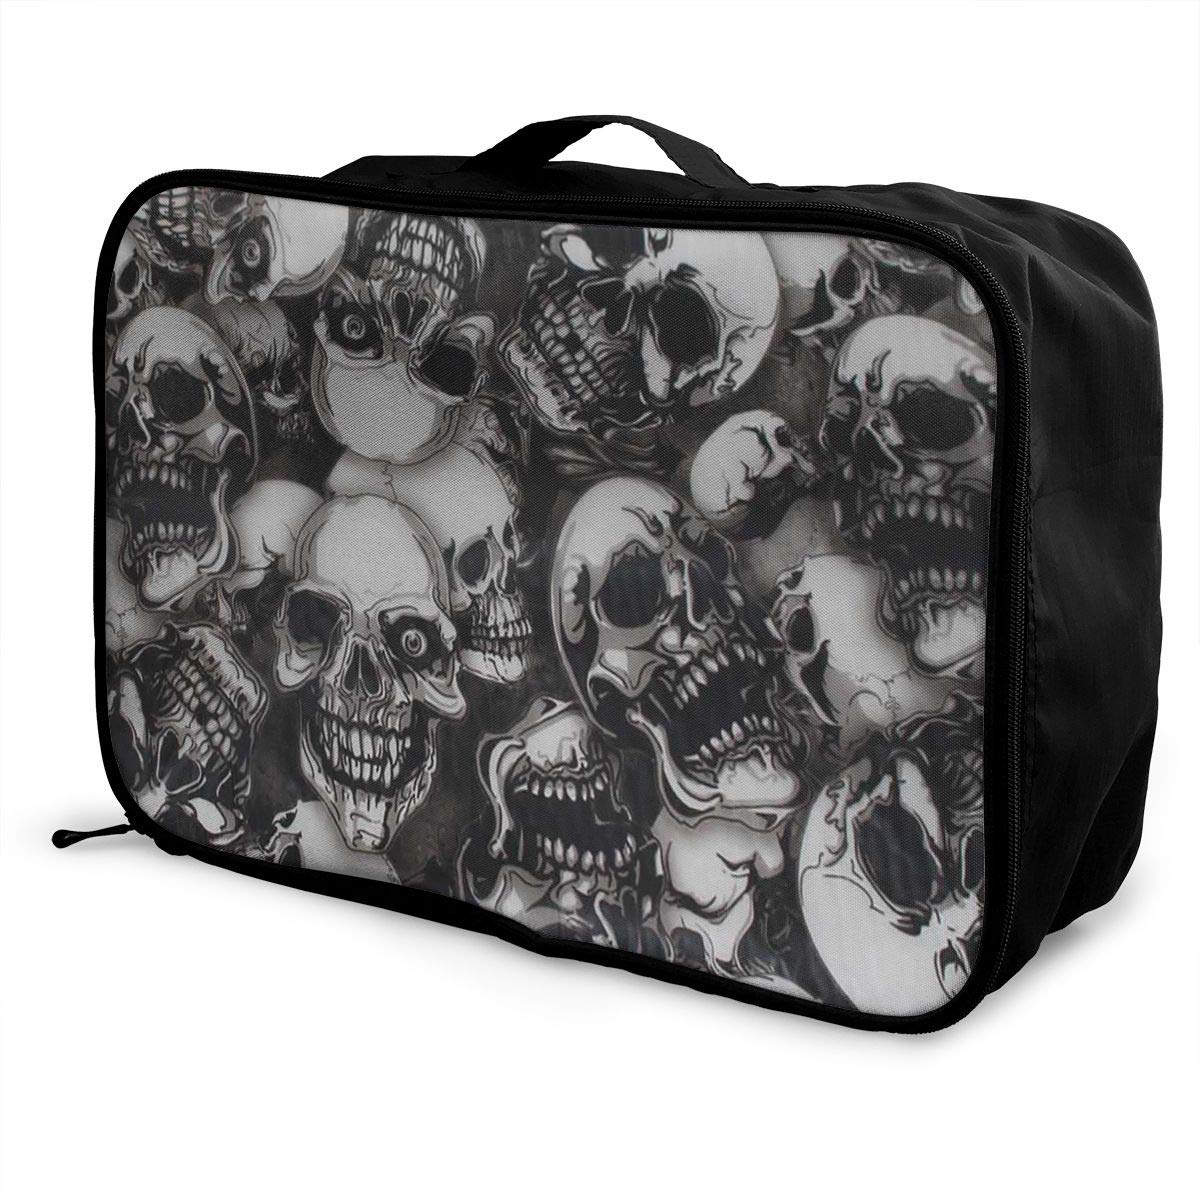 Travel Luggage Duffle Bag Lightweight Portable Handbag Skulls Pattern Large Capacity Waterproof Foldable Storage Tote